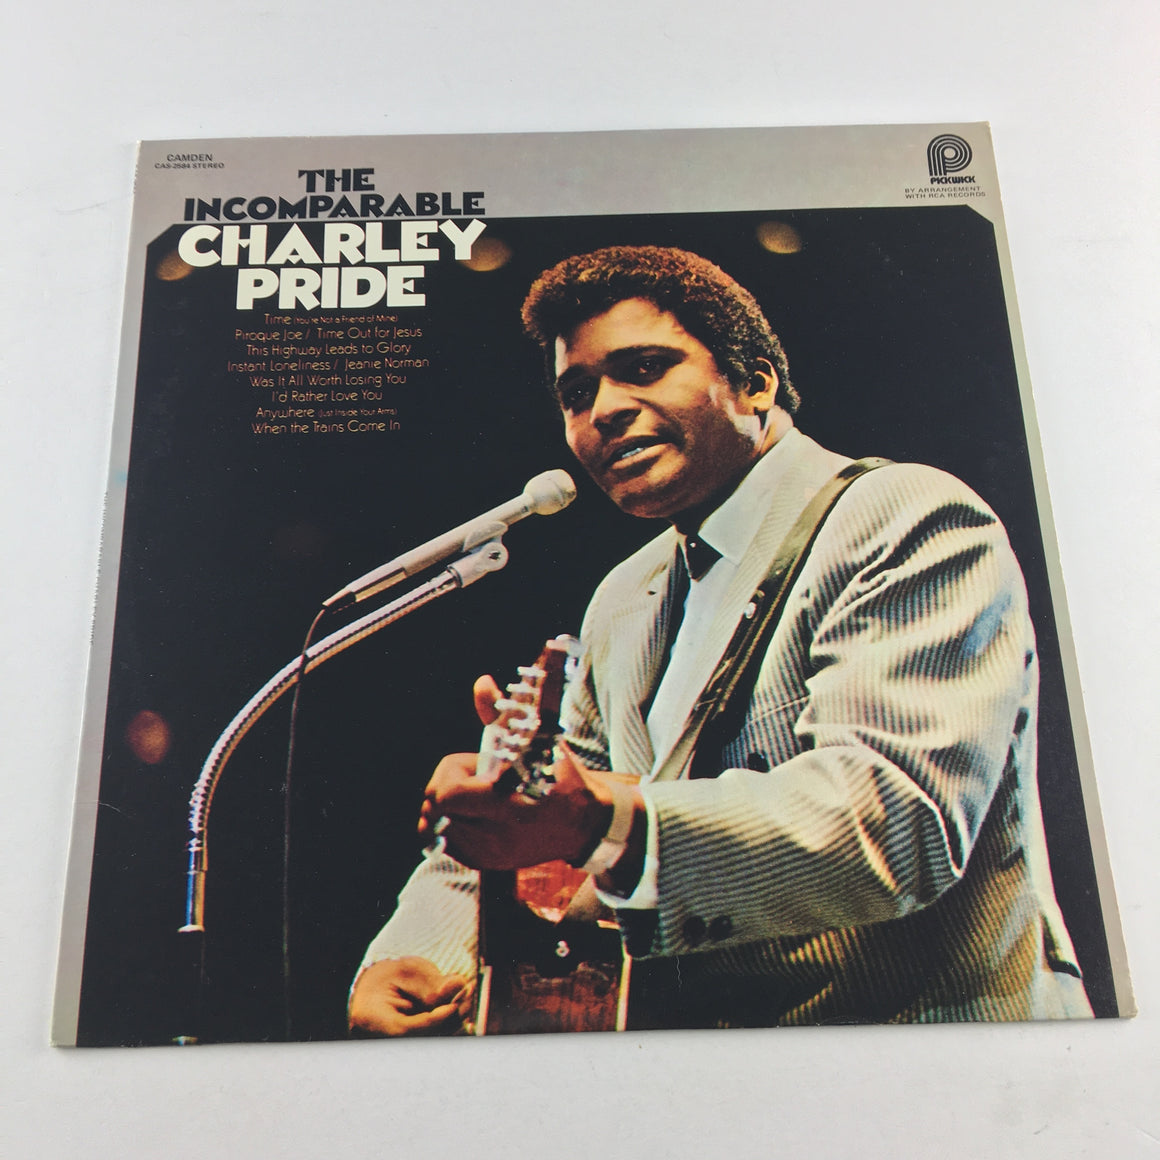 Charley Pride The Incomparable Charley Pride Used Vinyl LP VG+ CAS-2584